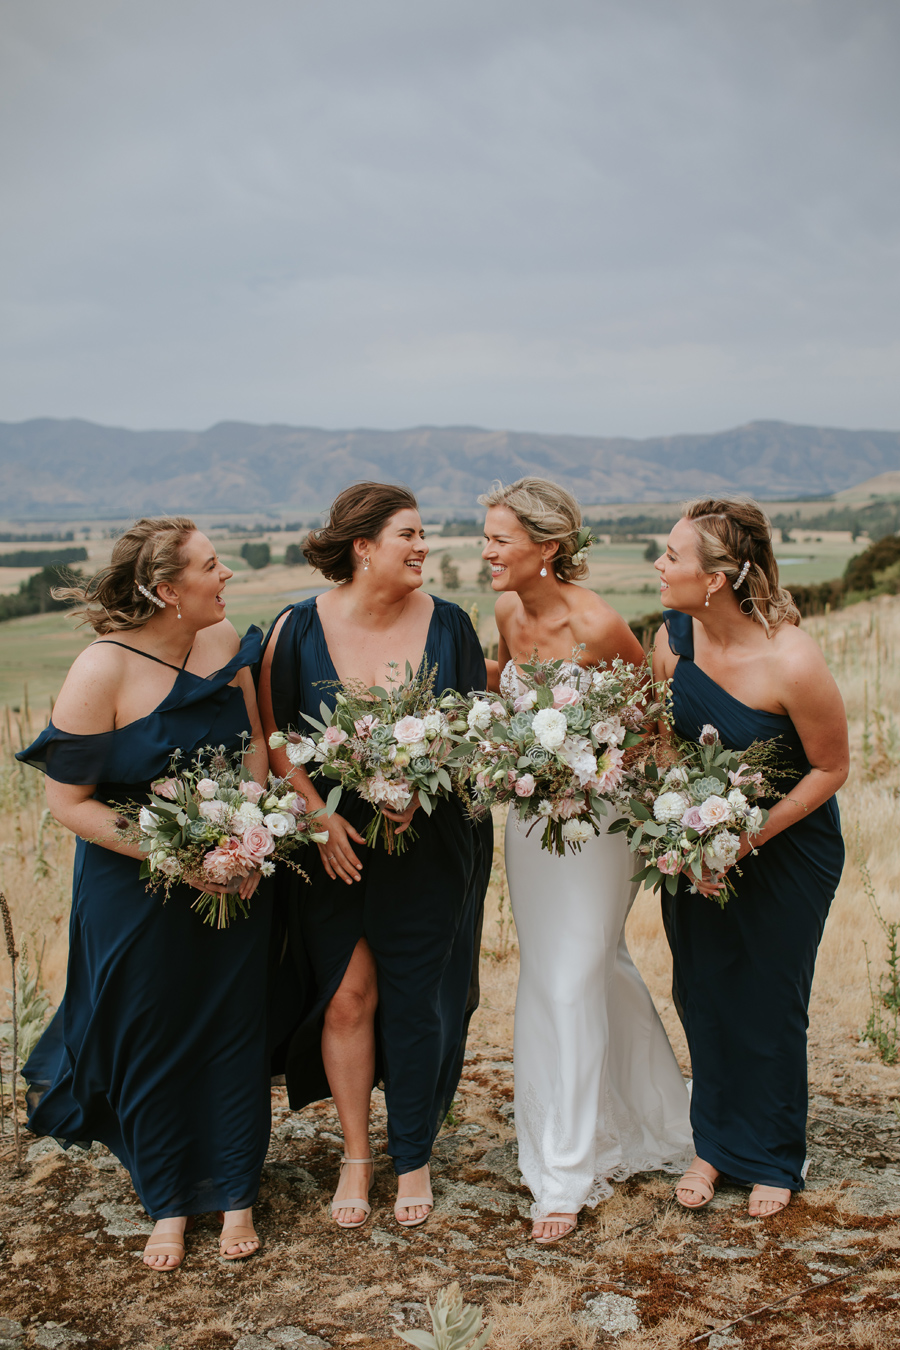 A bride and her beautiful maids stand laughing with hills behind them. They carry floral bouquets. Photography by Alpine Image Company